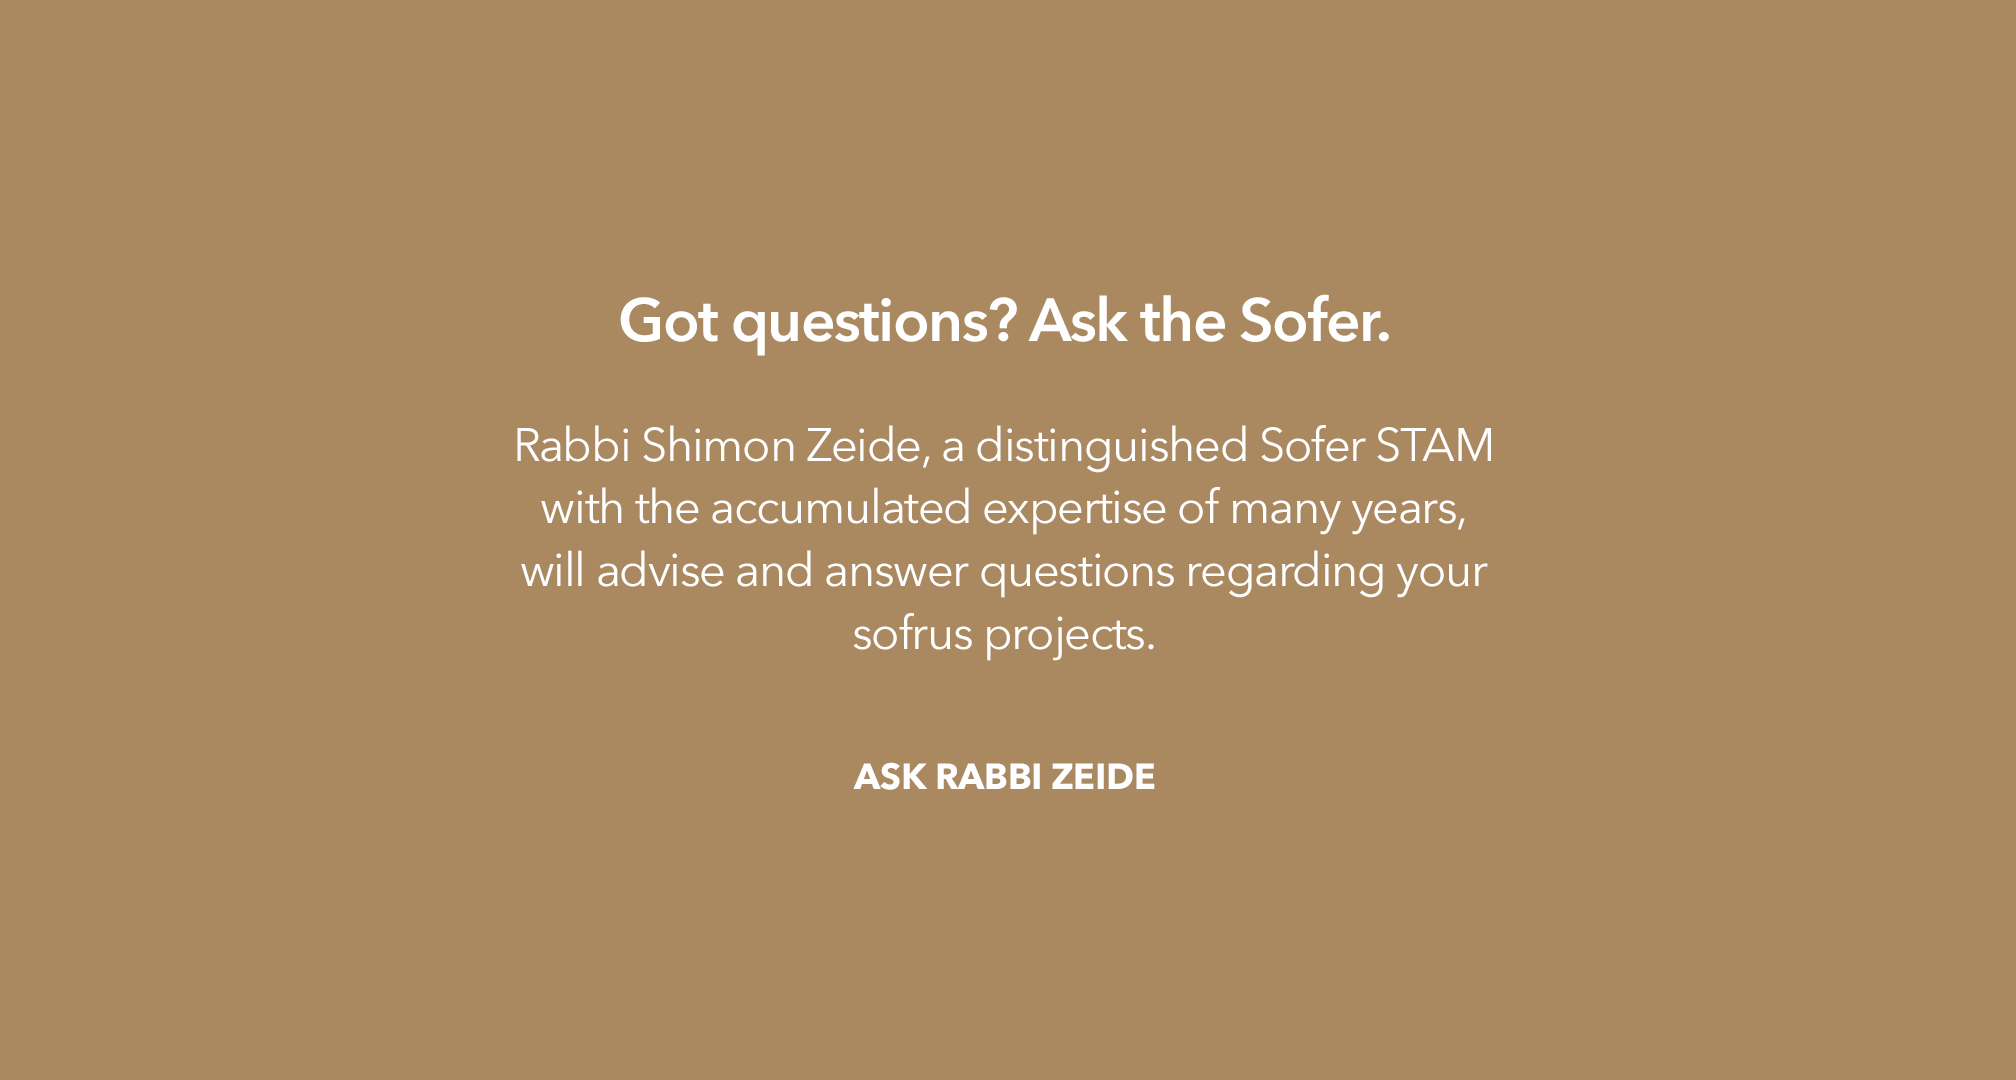 Got questions? Ask the Sofer. Rabbi Shimon Zeide, a distinguished Sofer STAM with the accumulated ezpertise of many years, will advise and answer questions regarding your sofrus projects.